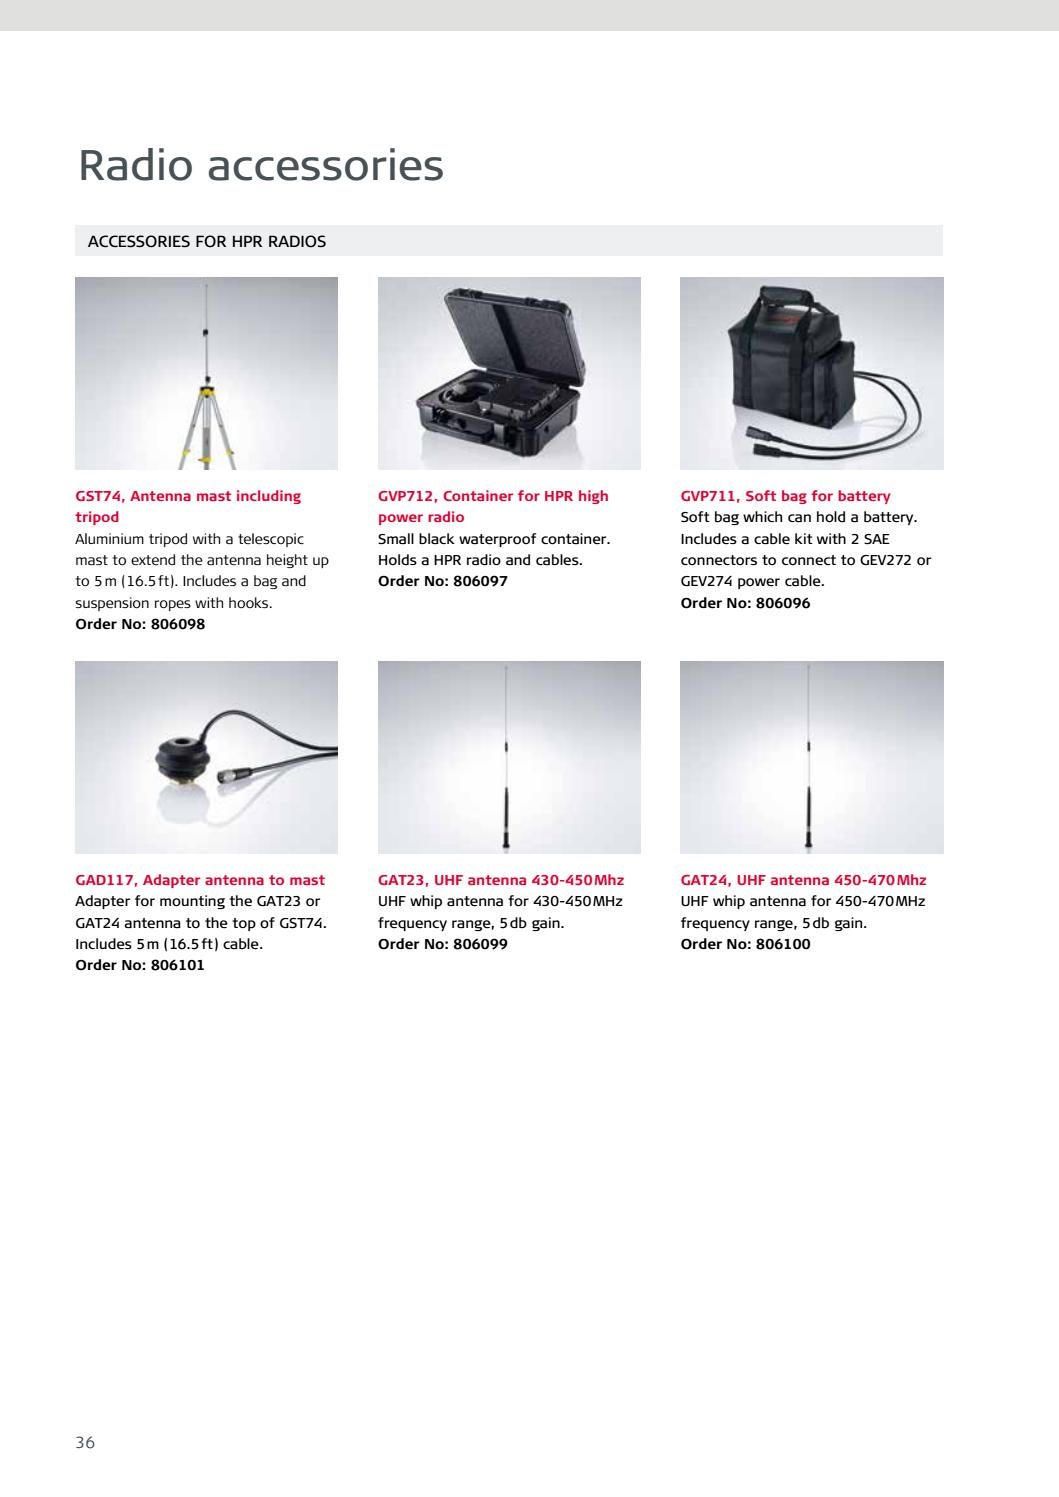 Accessories Catalogue by hexagon - issuu